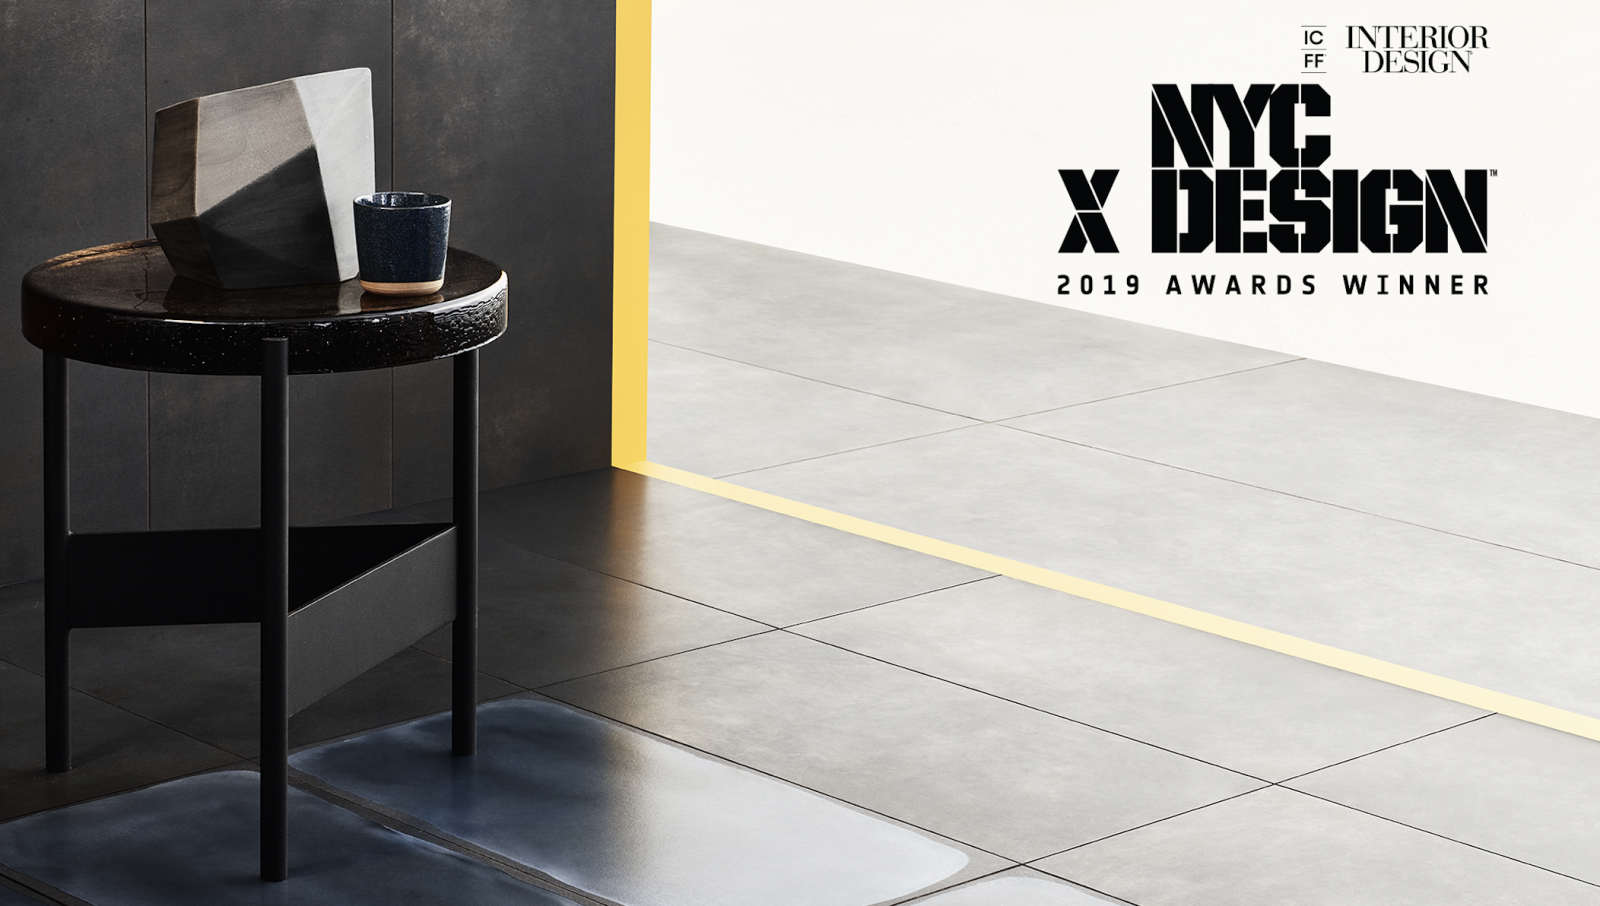 BEST HARD FLOORING PRODUCT POUR CERAMICHE PIEMME - NYCxDESIGN 2019